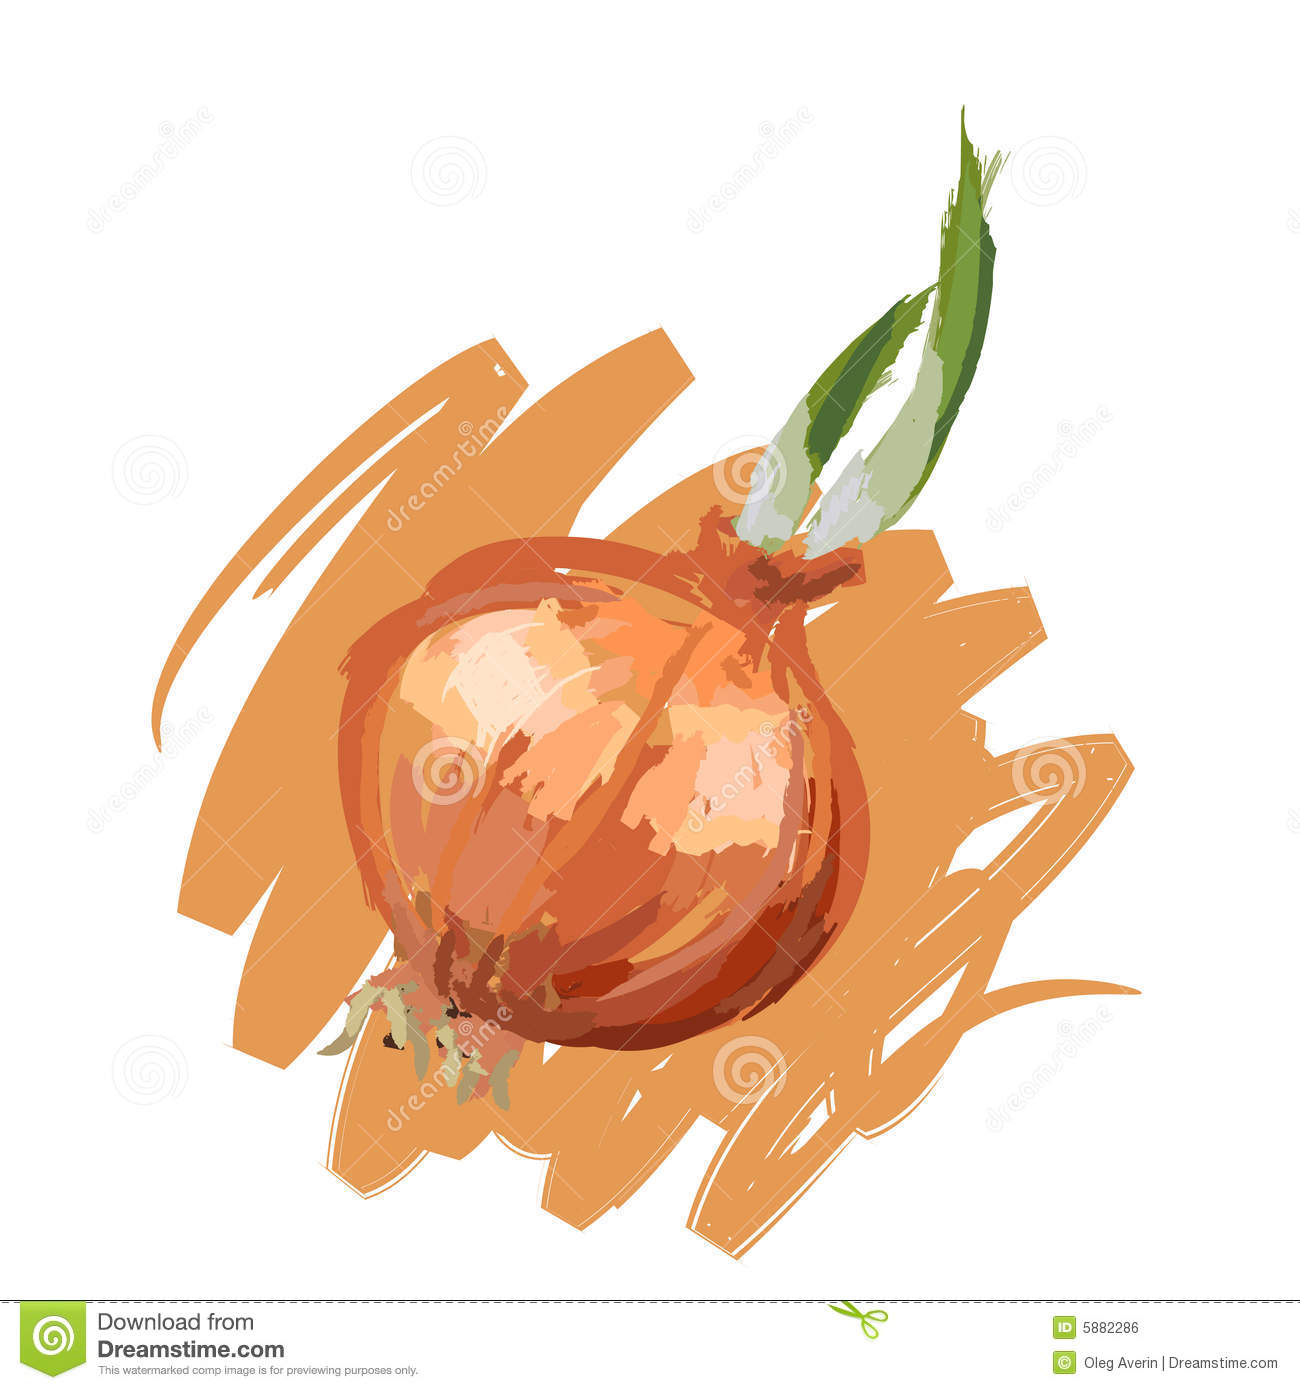 Onion Royalty Free Stock Image - Image: 5882286